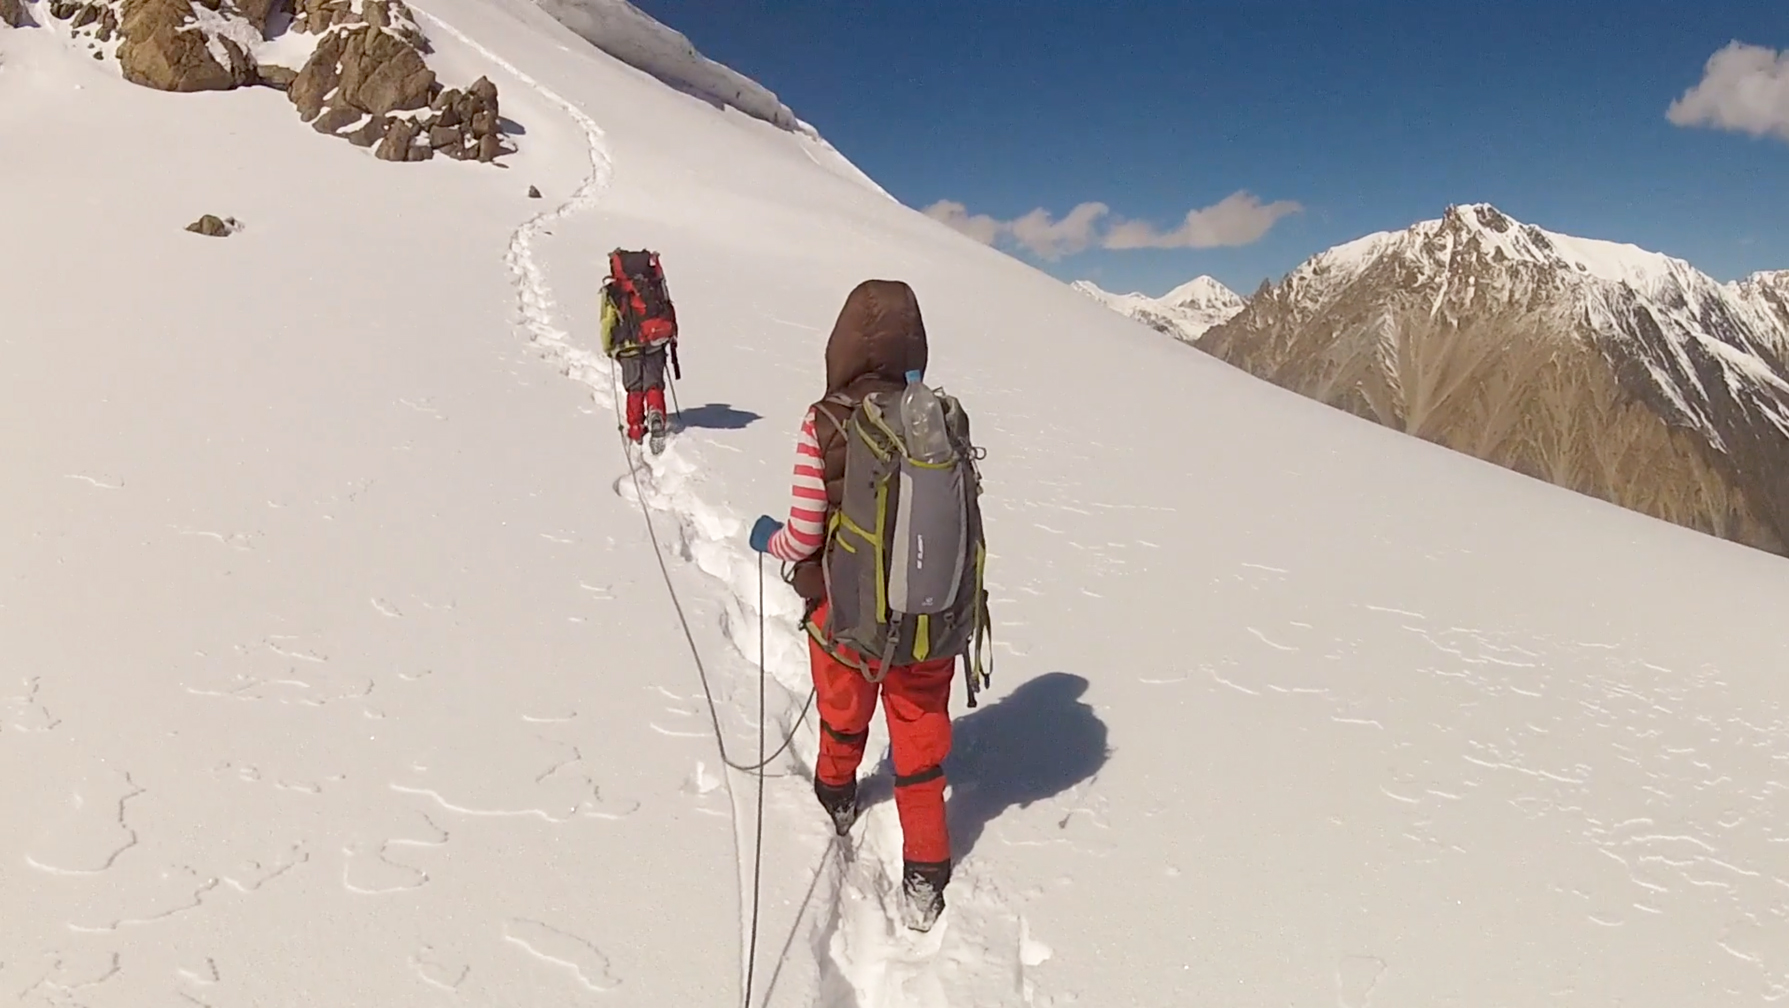 A scene from The Unknown Mountaineer by Shehrbano Saiyid.